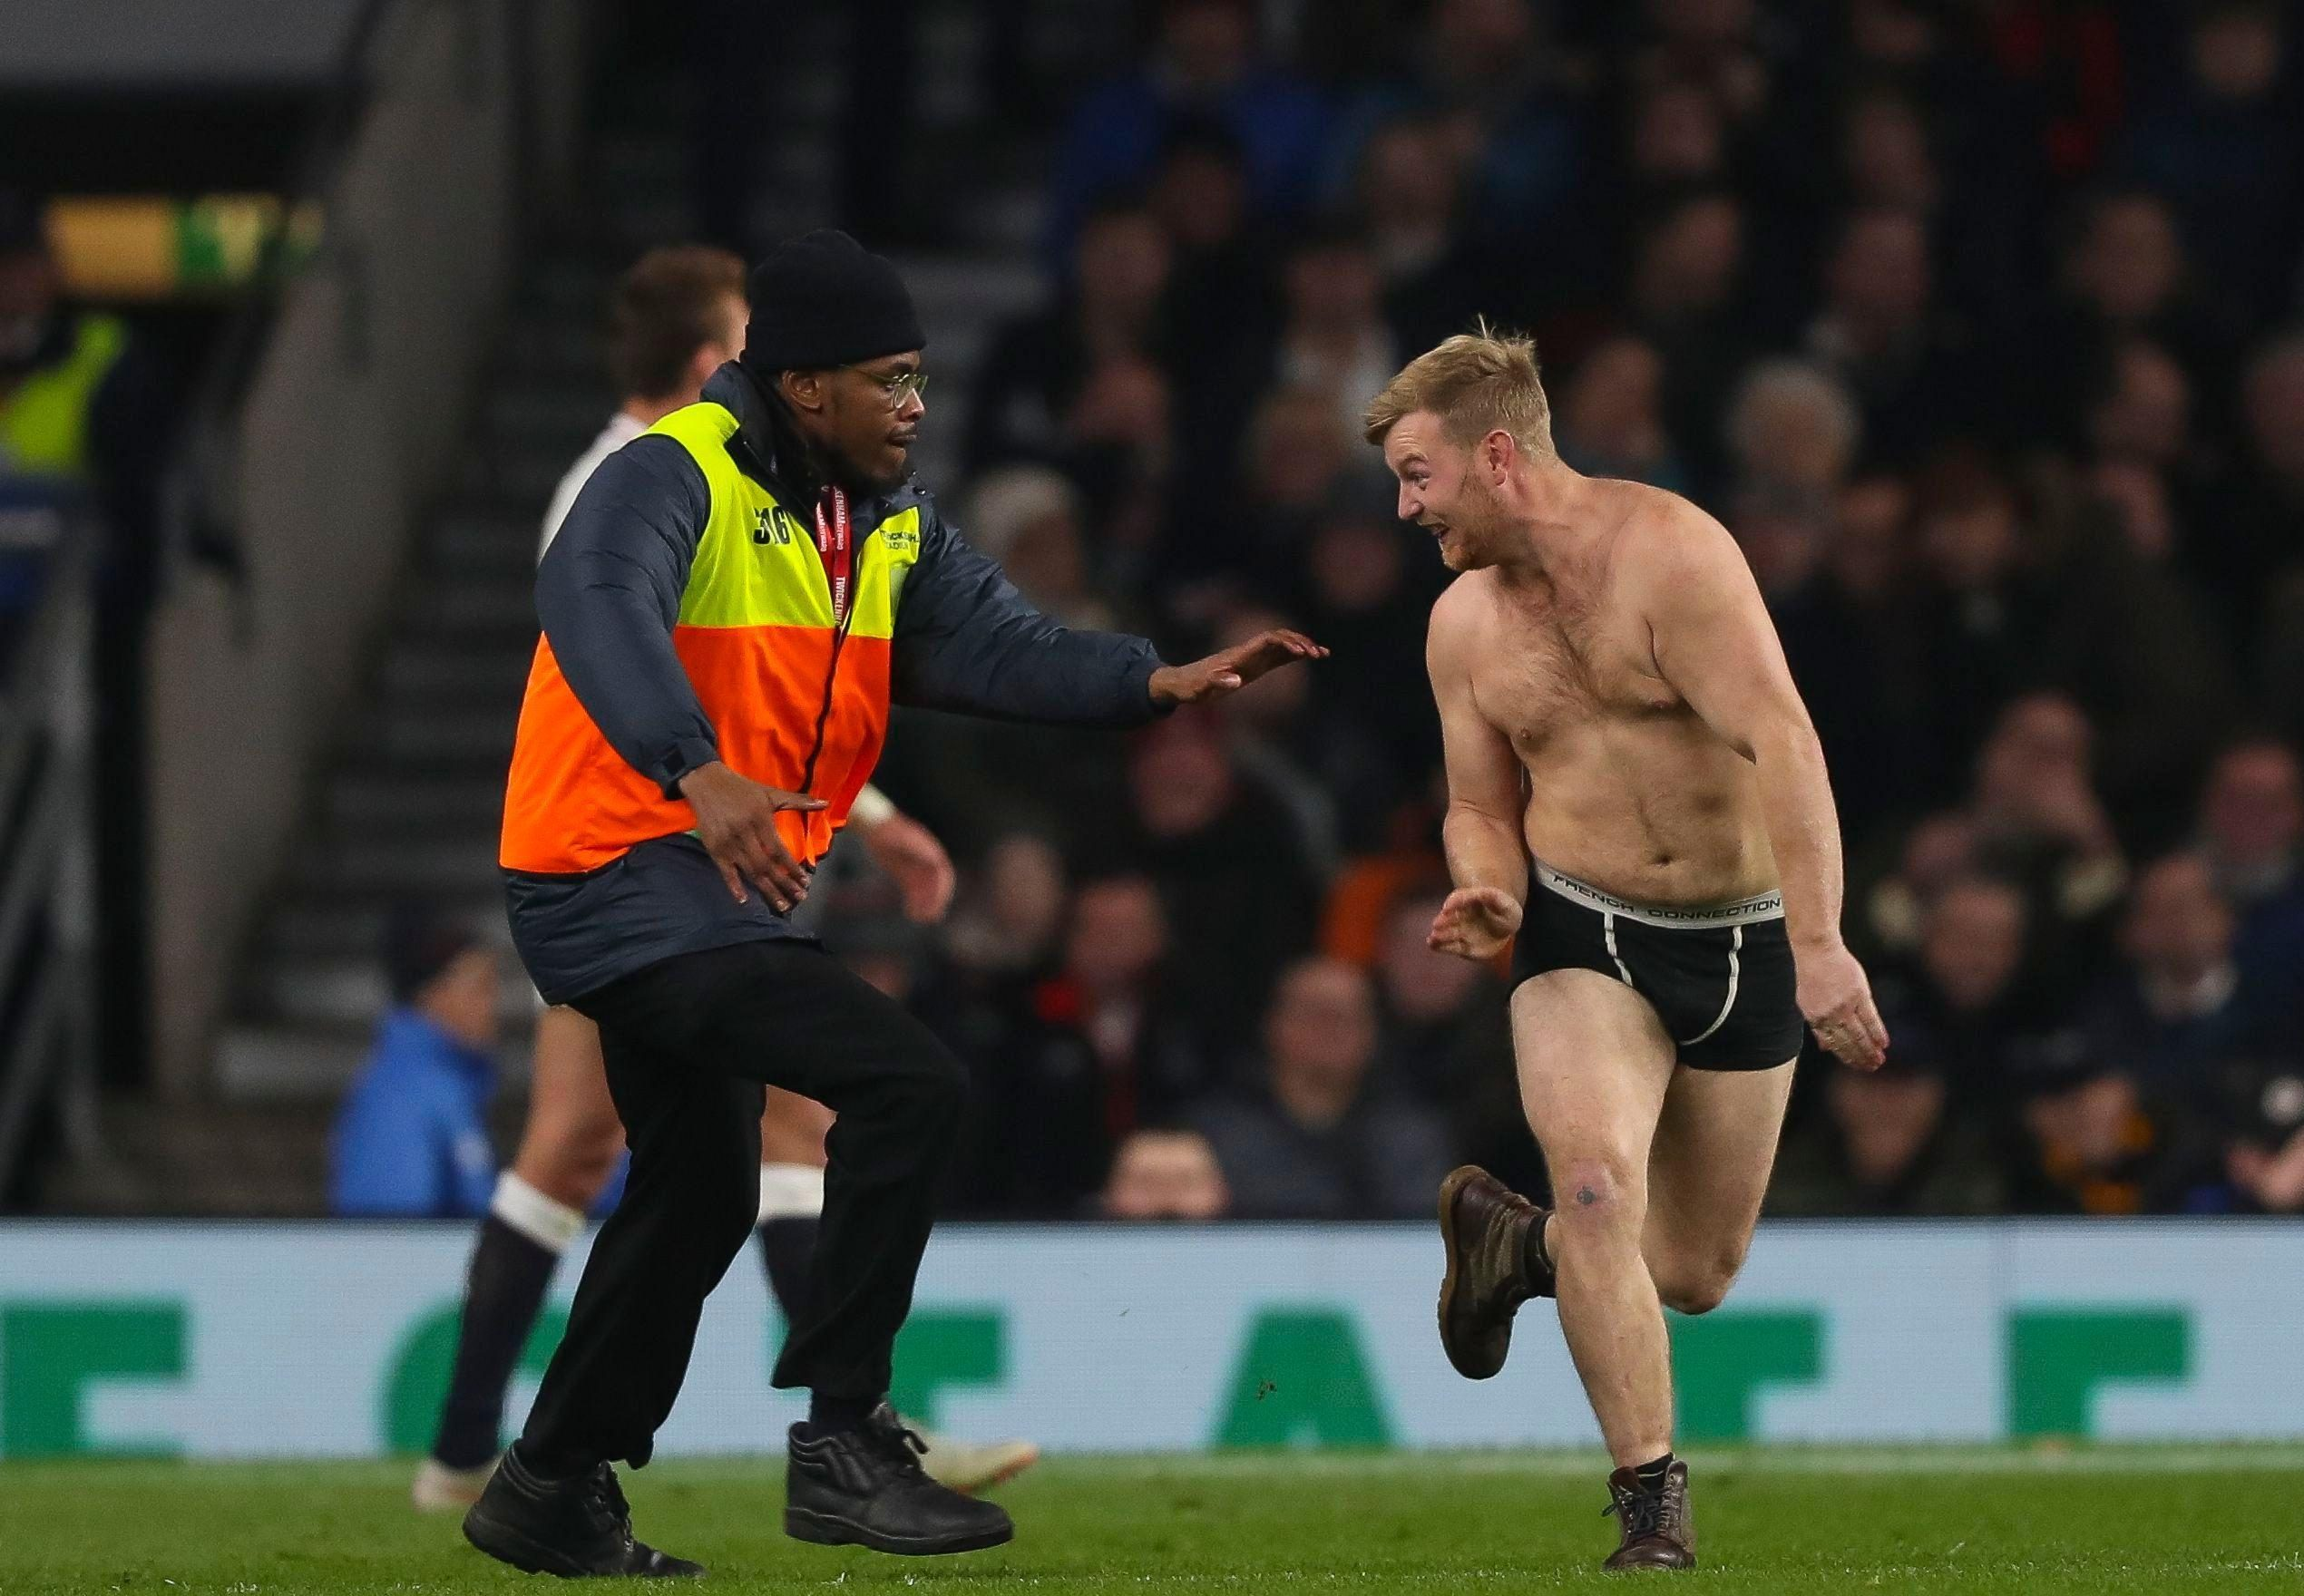 The streaker tries to escape the clutches of another steward